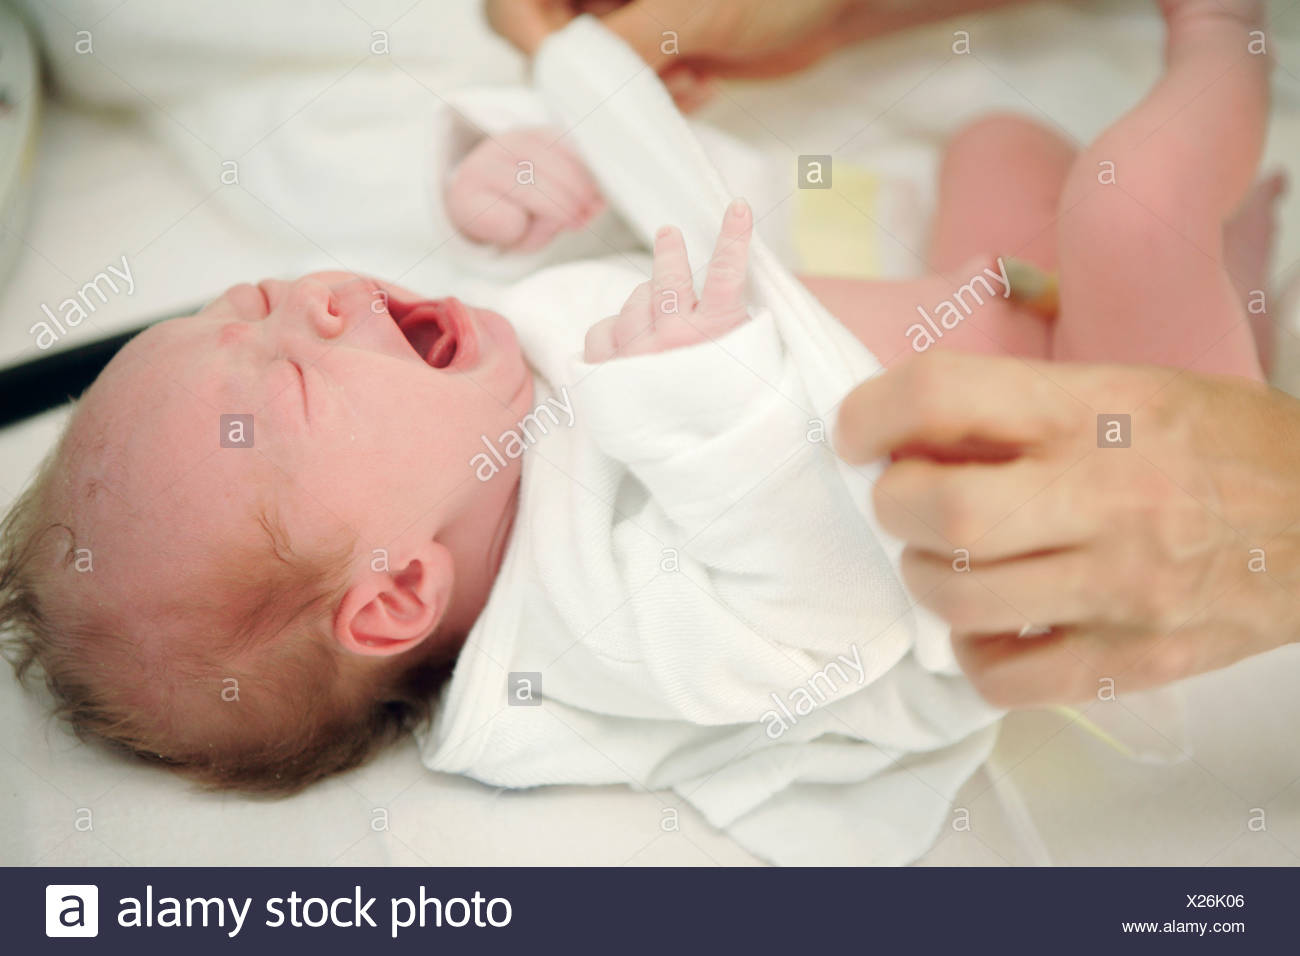 Close up of a person s hands examining a newborn baby girl - Stock Image